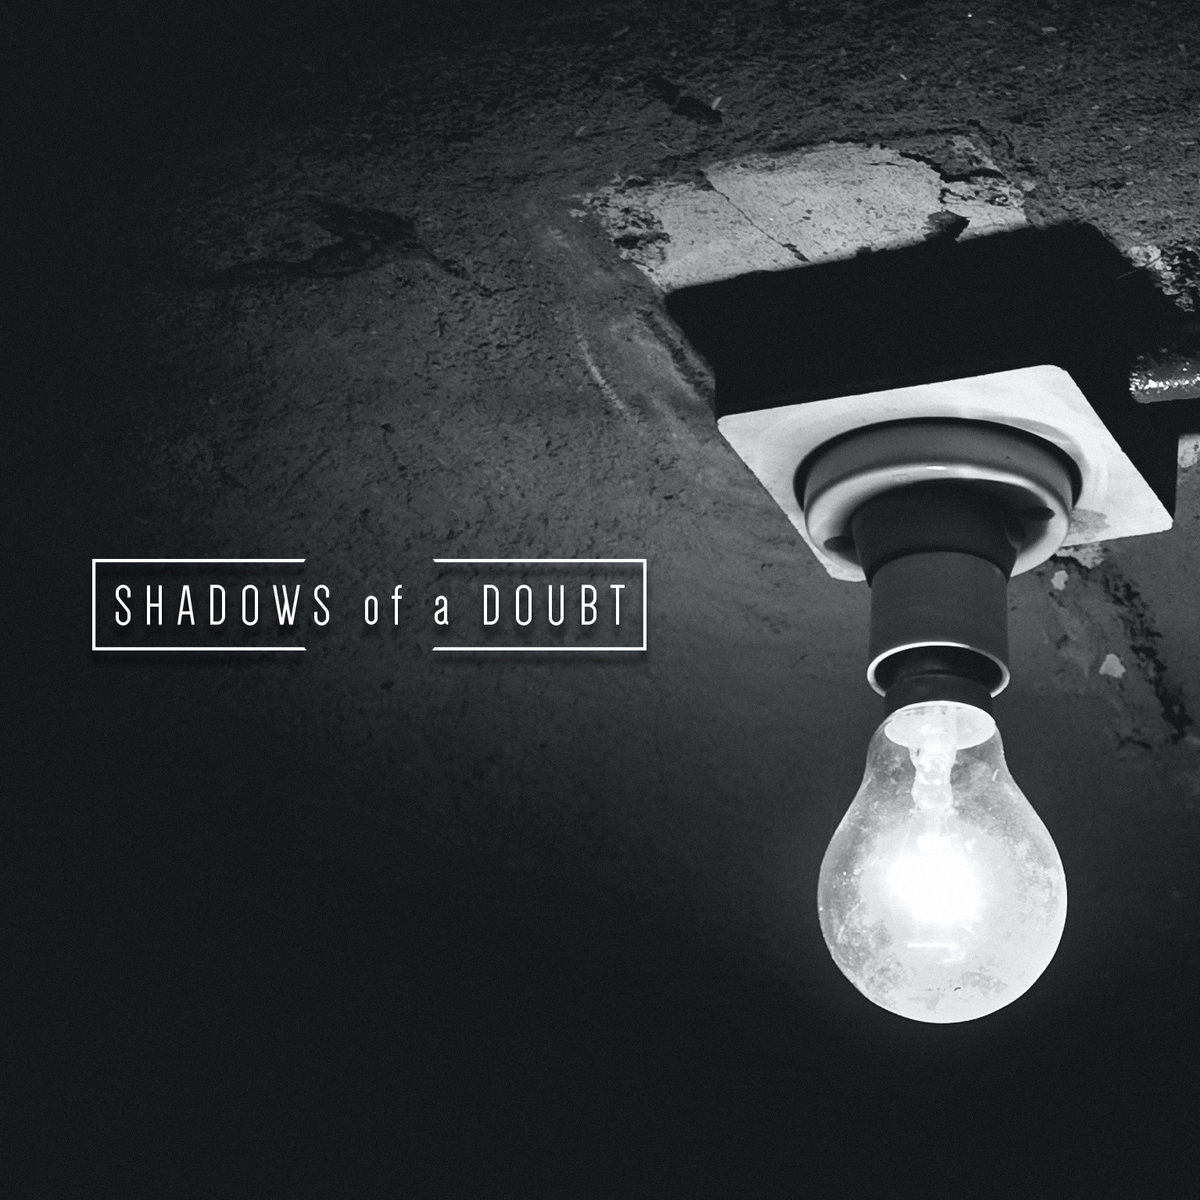 from VA - Shadows of a Doubt by TBTCI & Crying Vessel - Dig Deep | The Blog That Celebrates Itself Records